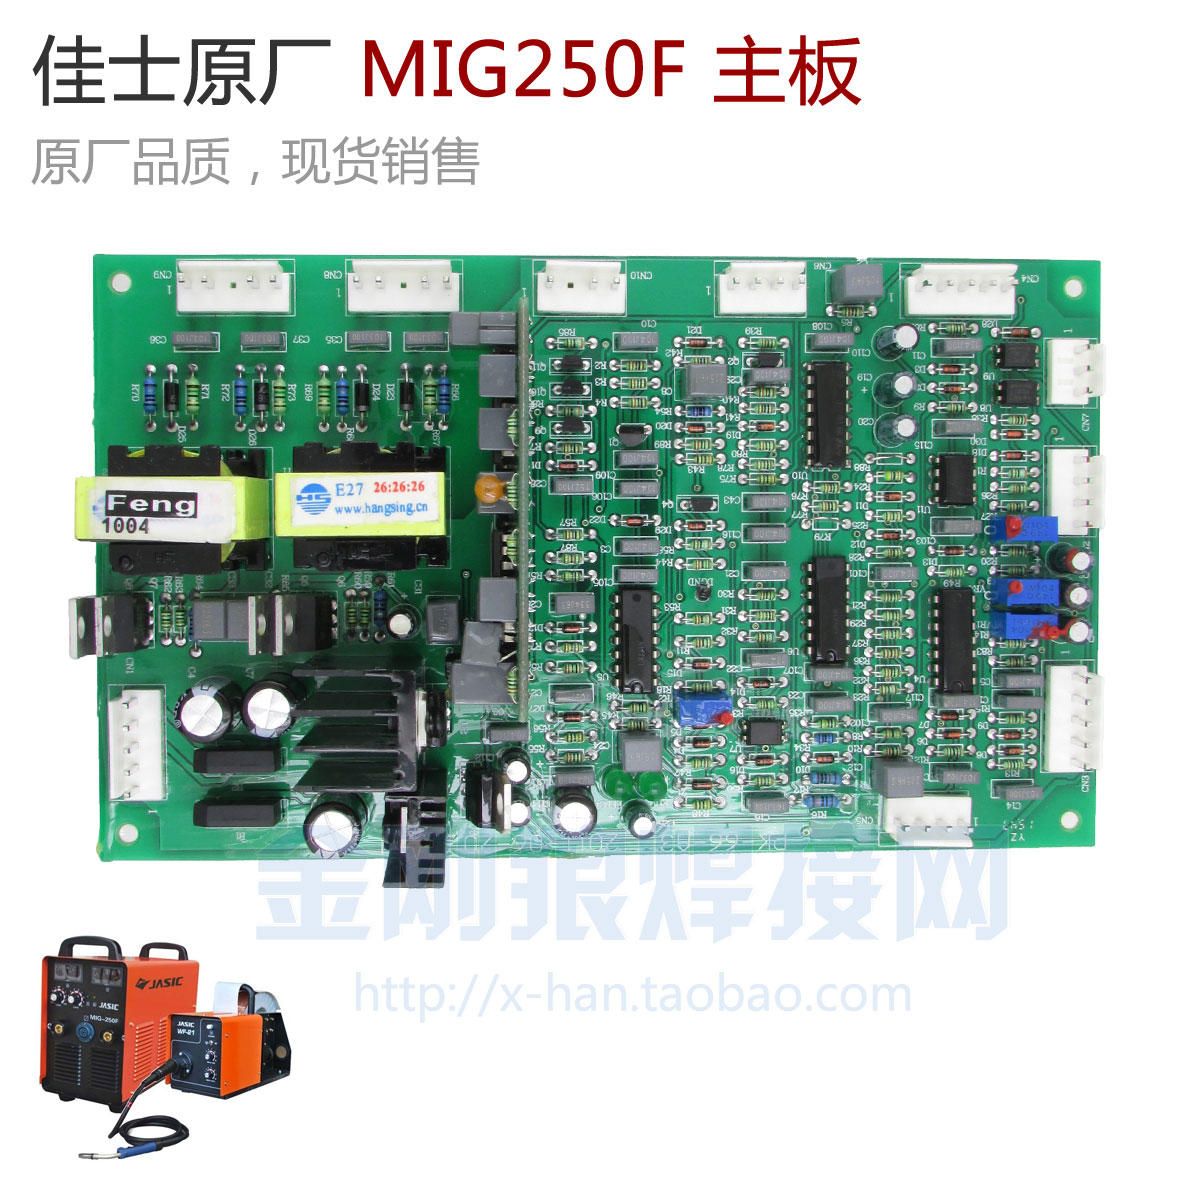 MIG250F Carbon Dioxide Gas Shielded Welding Machine Main Board CO2 Two Welding Circuit Board argon arc welding plasma carbon dioxide co2 gas shielded welding machine solenoid valve copper coils